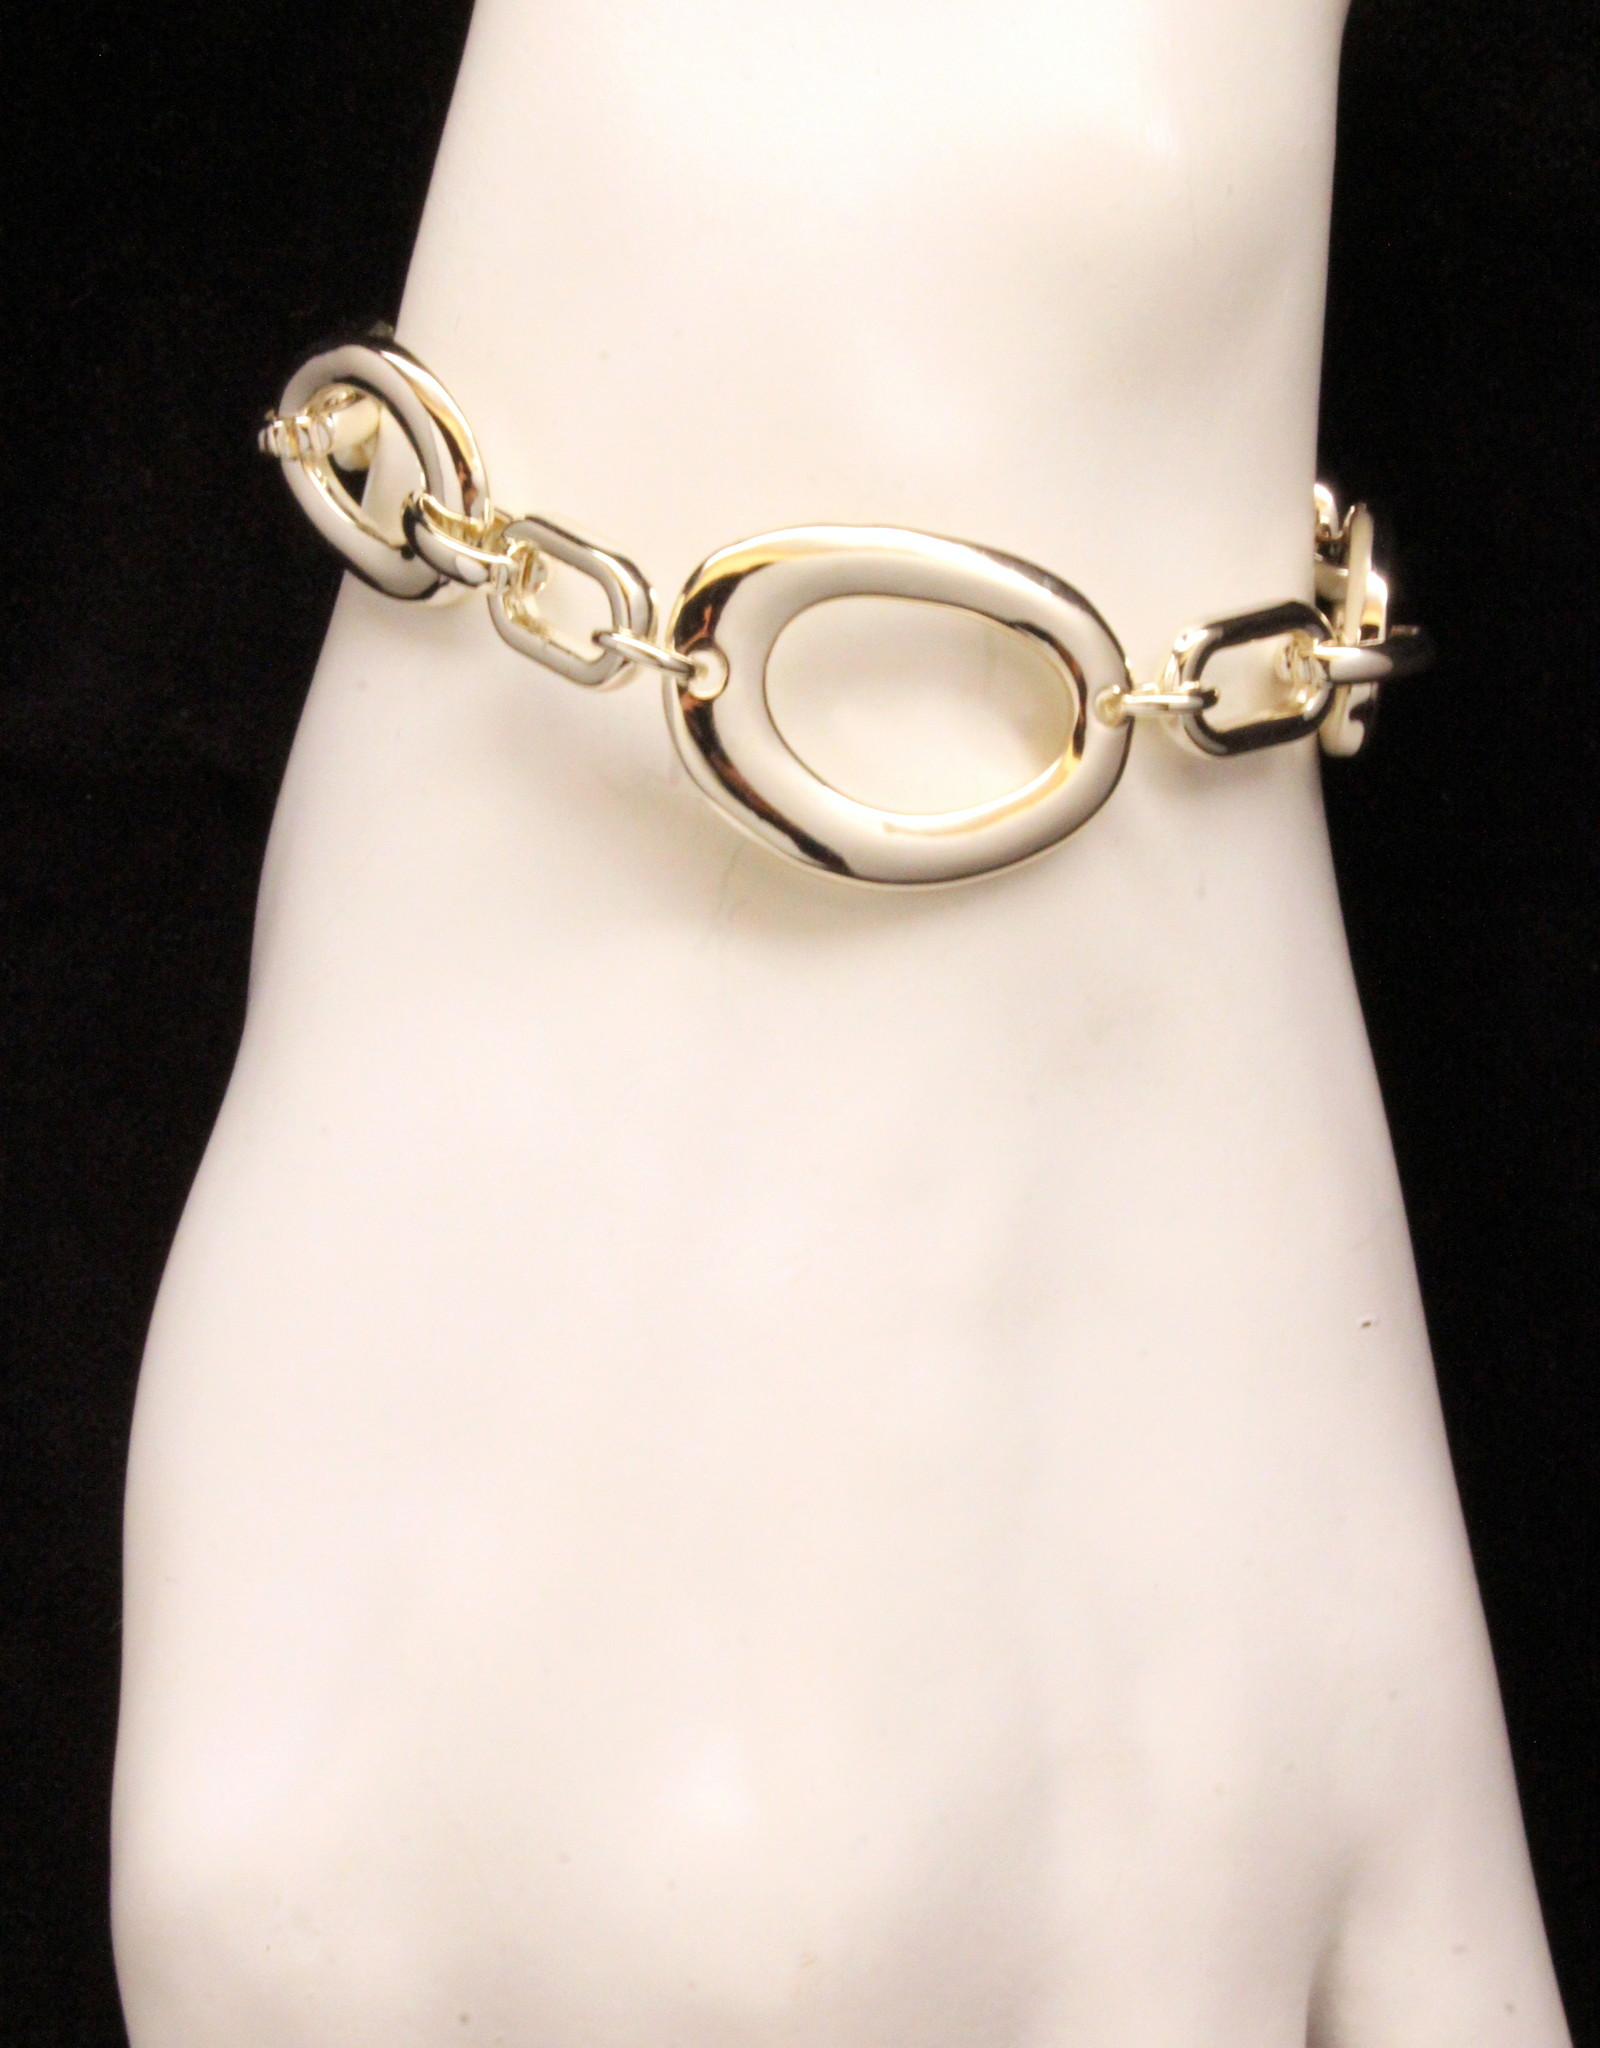 MERX Jewelry Loop chain bracelet